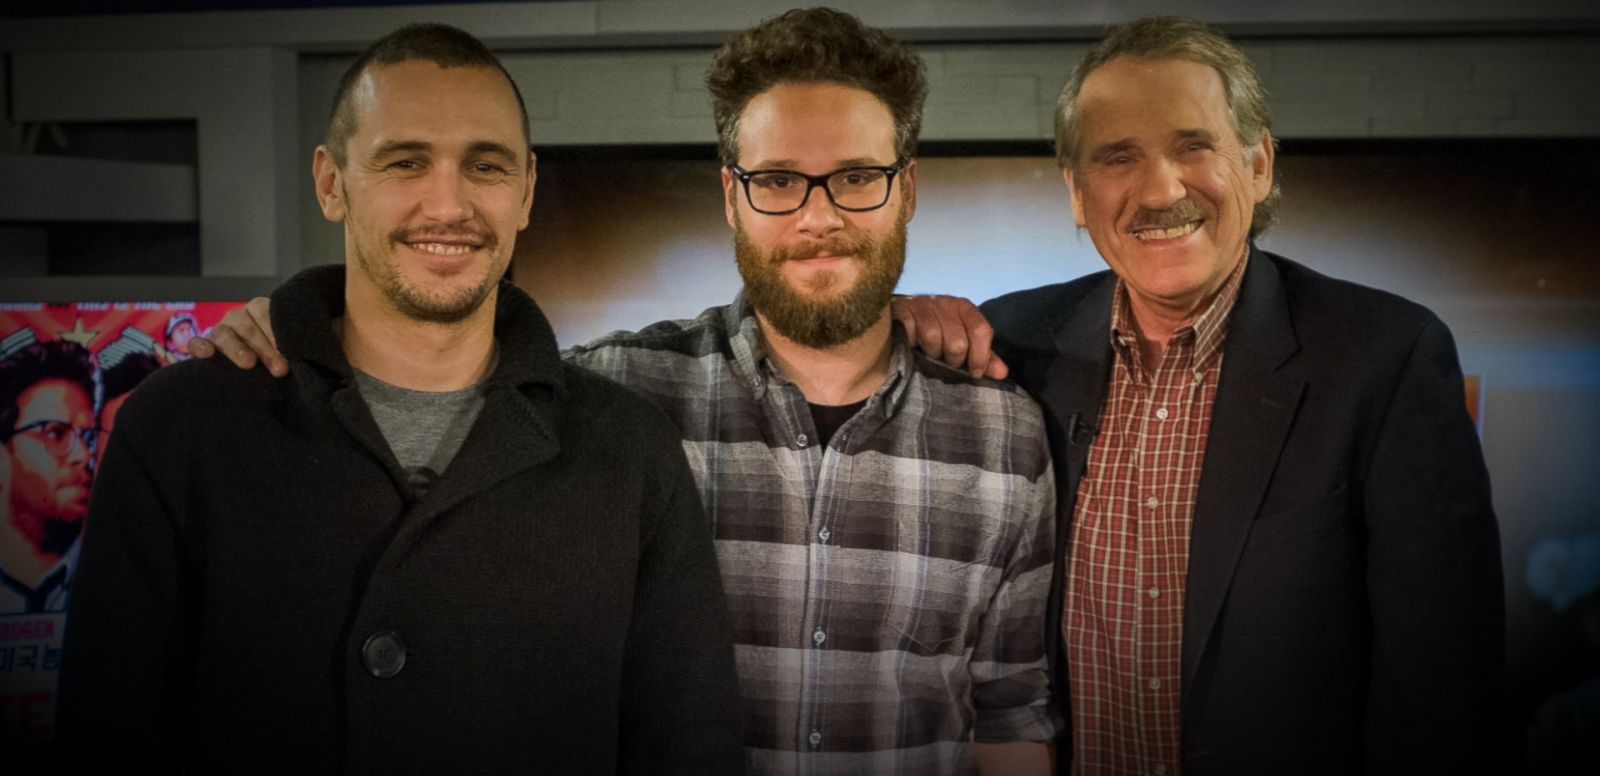 VIDEO: Seth Rogen and James Franco on Why They Made 'The Interview'